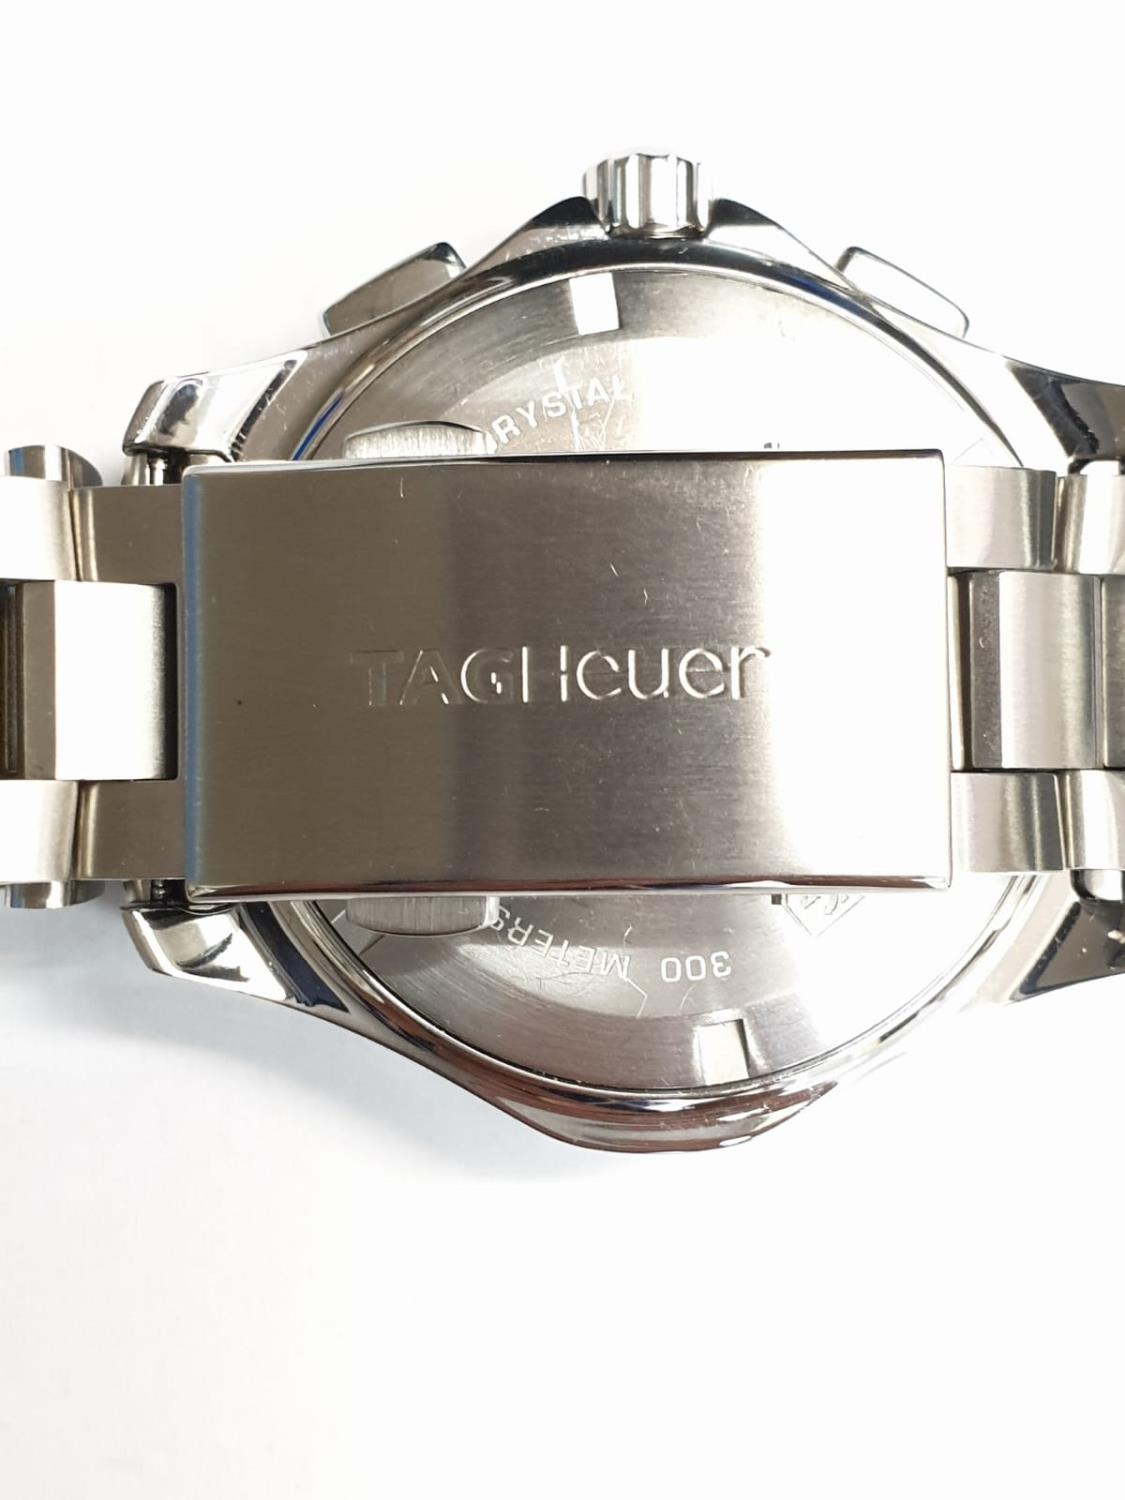 Tag Heuer gents chronograph Aquaracer watch, black face twisted bezel and steel strap, 44mm case - Image 6 of 14